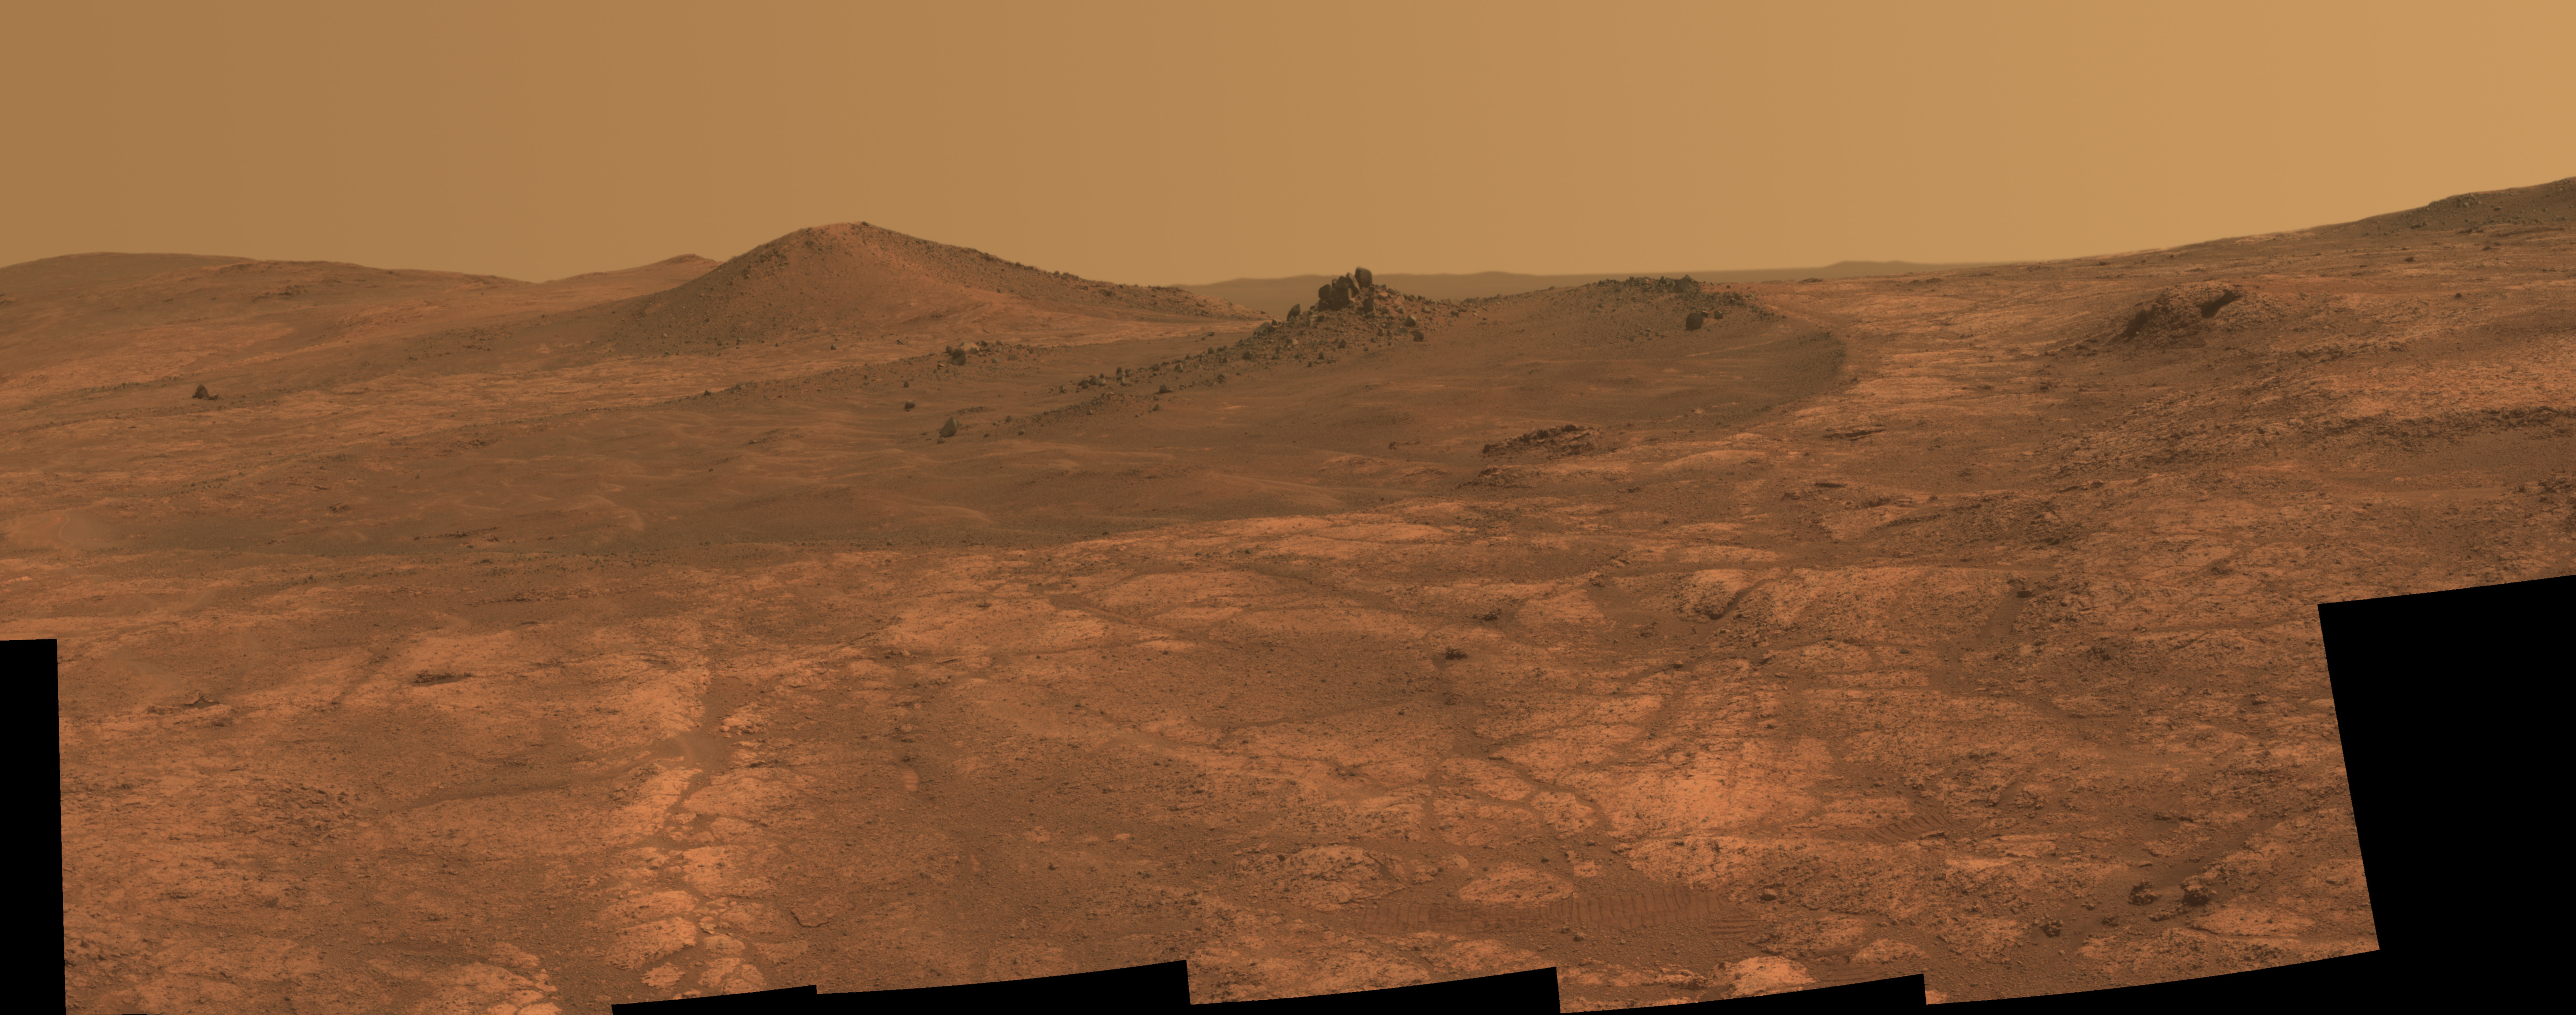 actual mars rover pictures nasa - photo #45